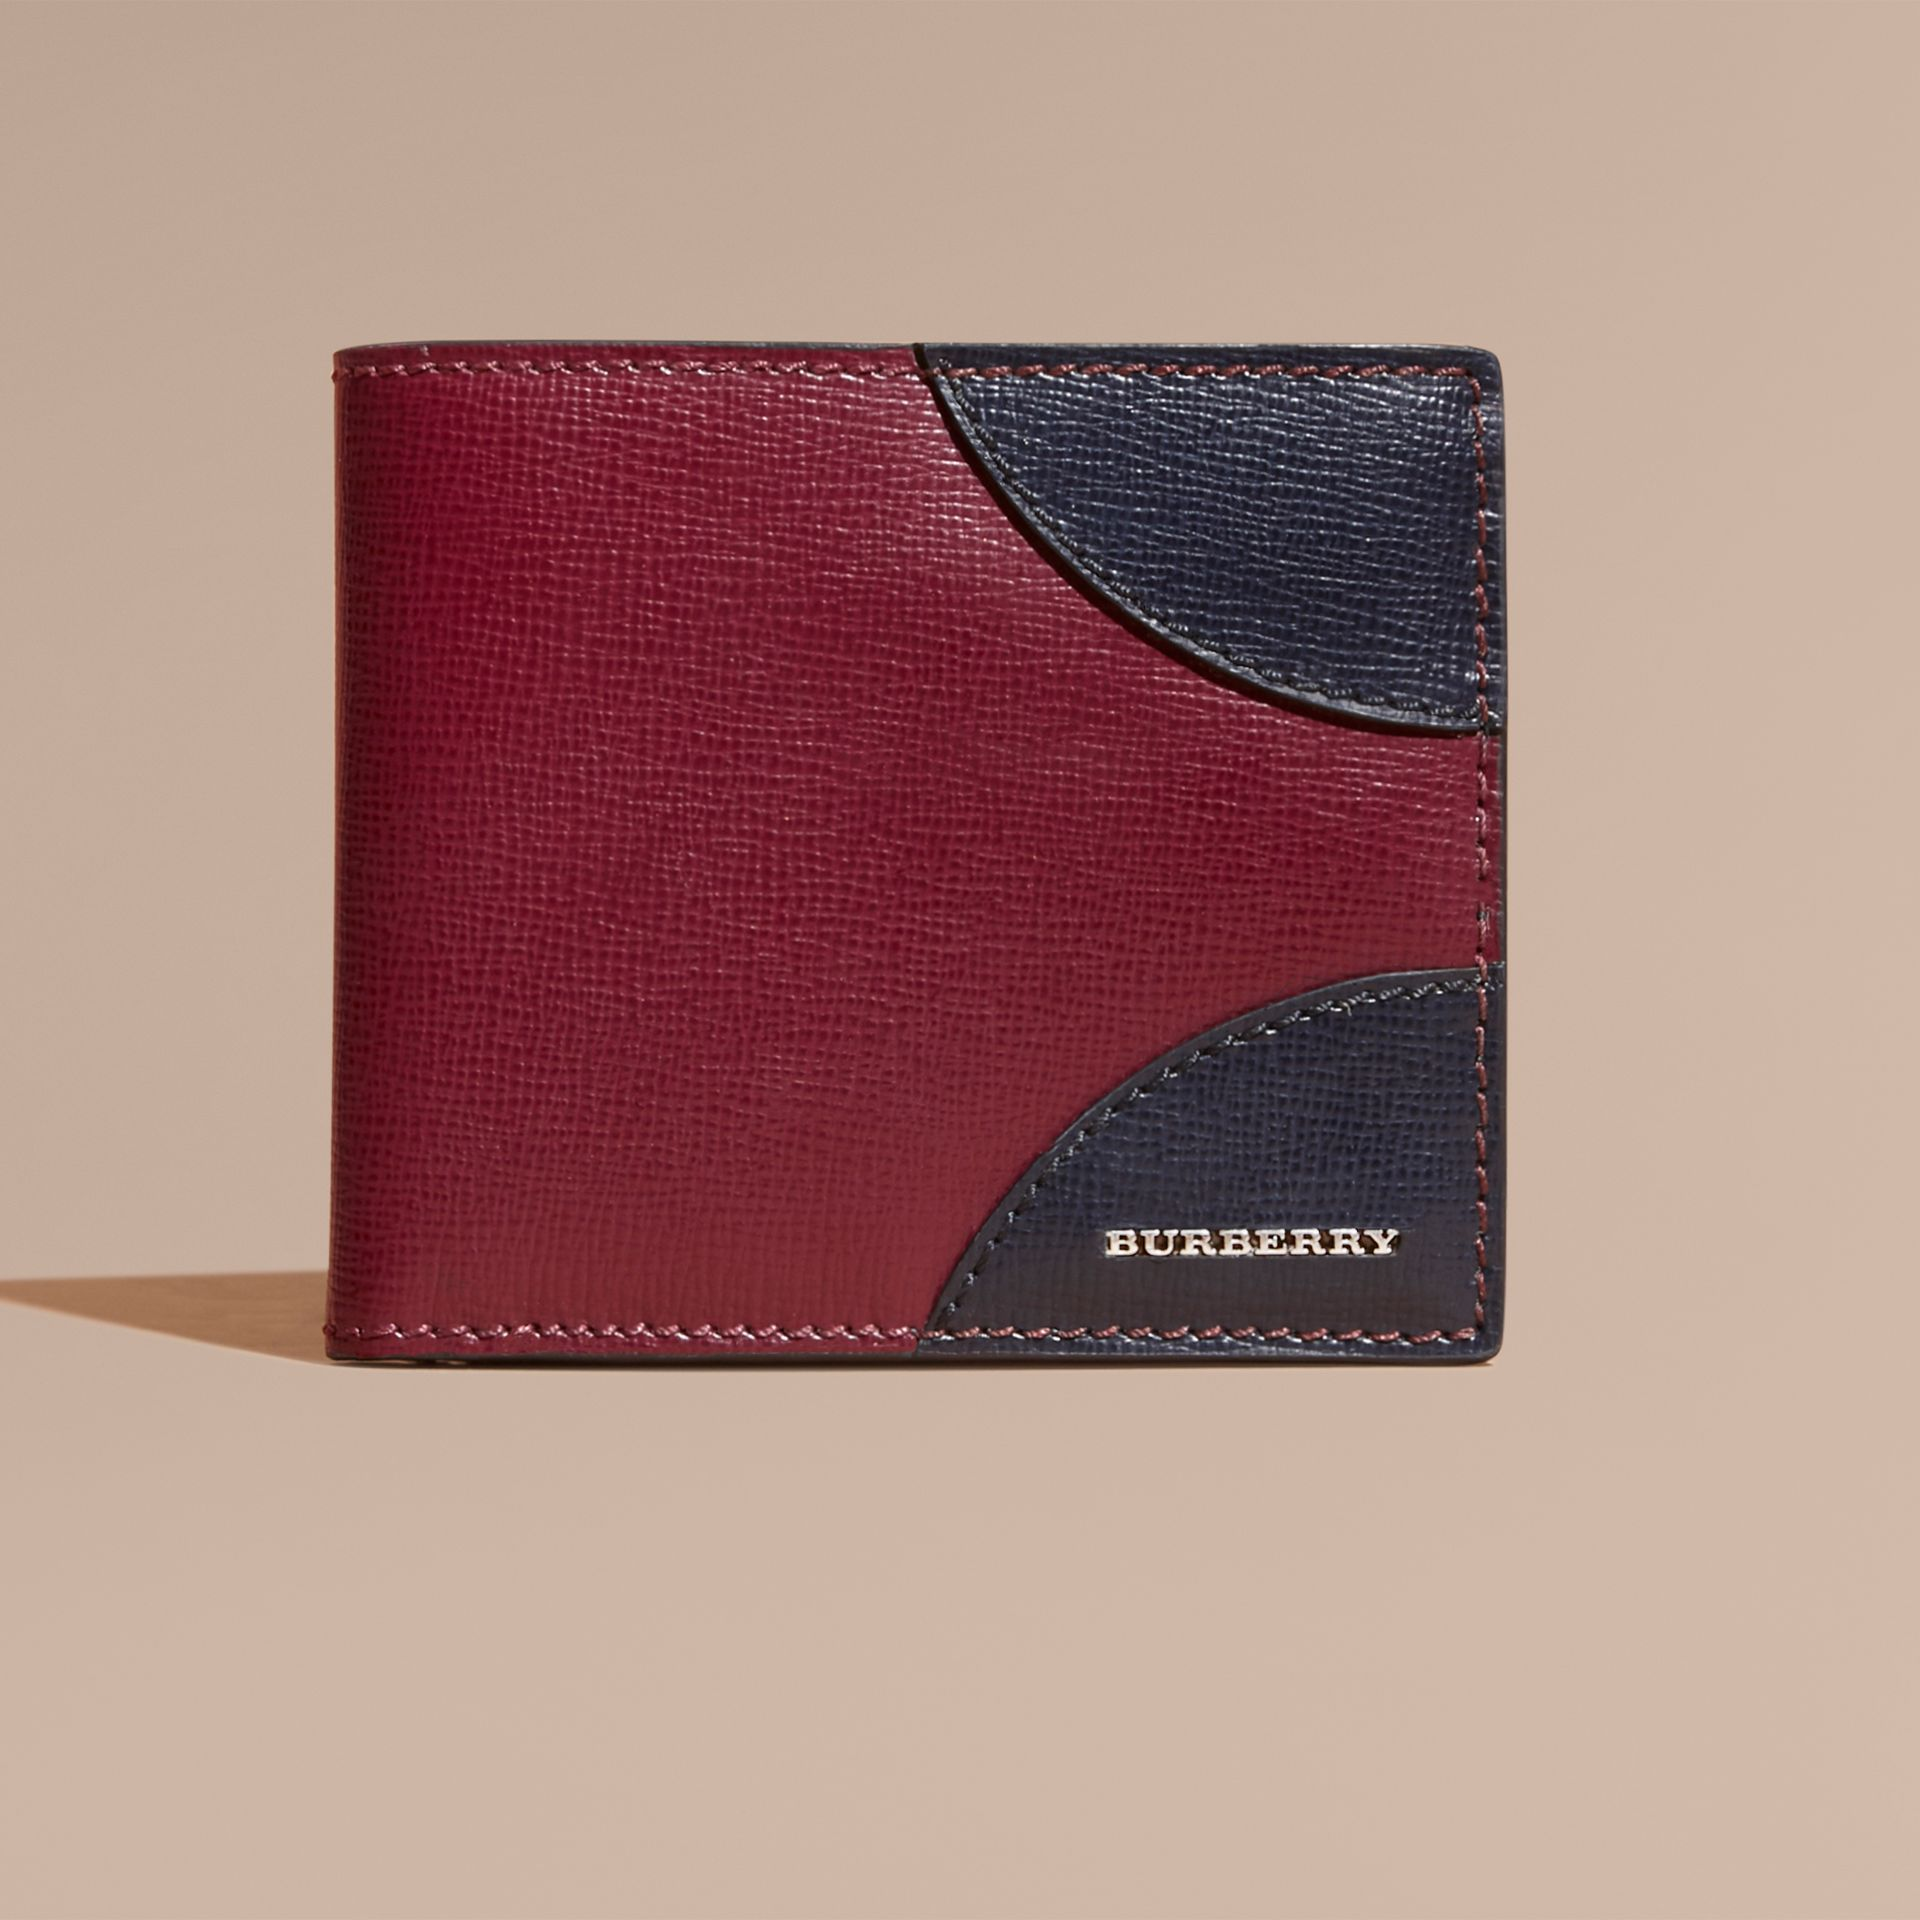 Two-tone London Leather International Bifold Wallet in Burgundy Red - gallery image 2